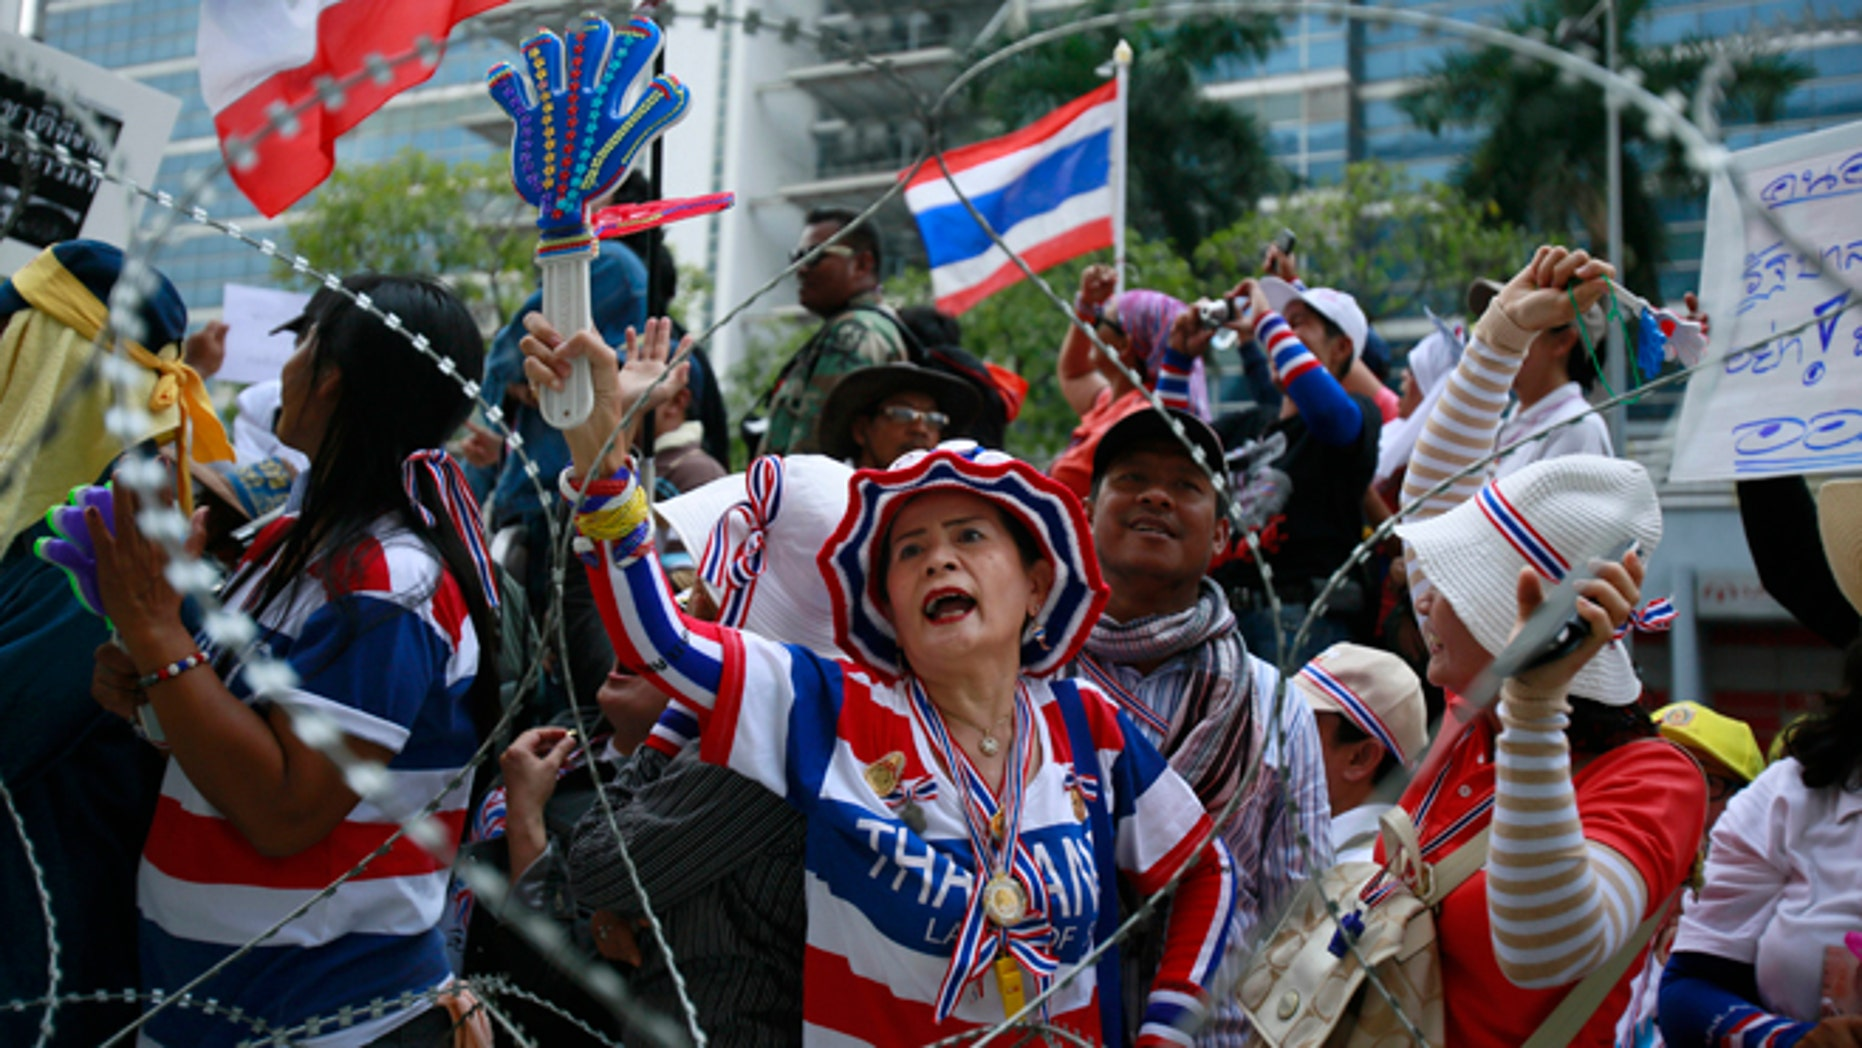 Feb. 19, 2014: Anti-government protesters shout slogans demanding Thai Prime Minister Yingluck Shinawatra to step down during a protest outside her temporary office in the building of the Permanent Secretary of Defense in northern Bangkok, Thailand.